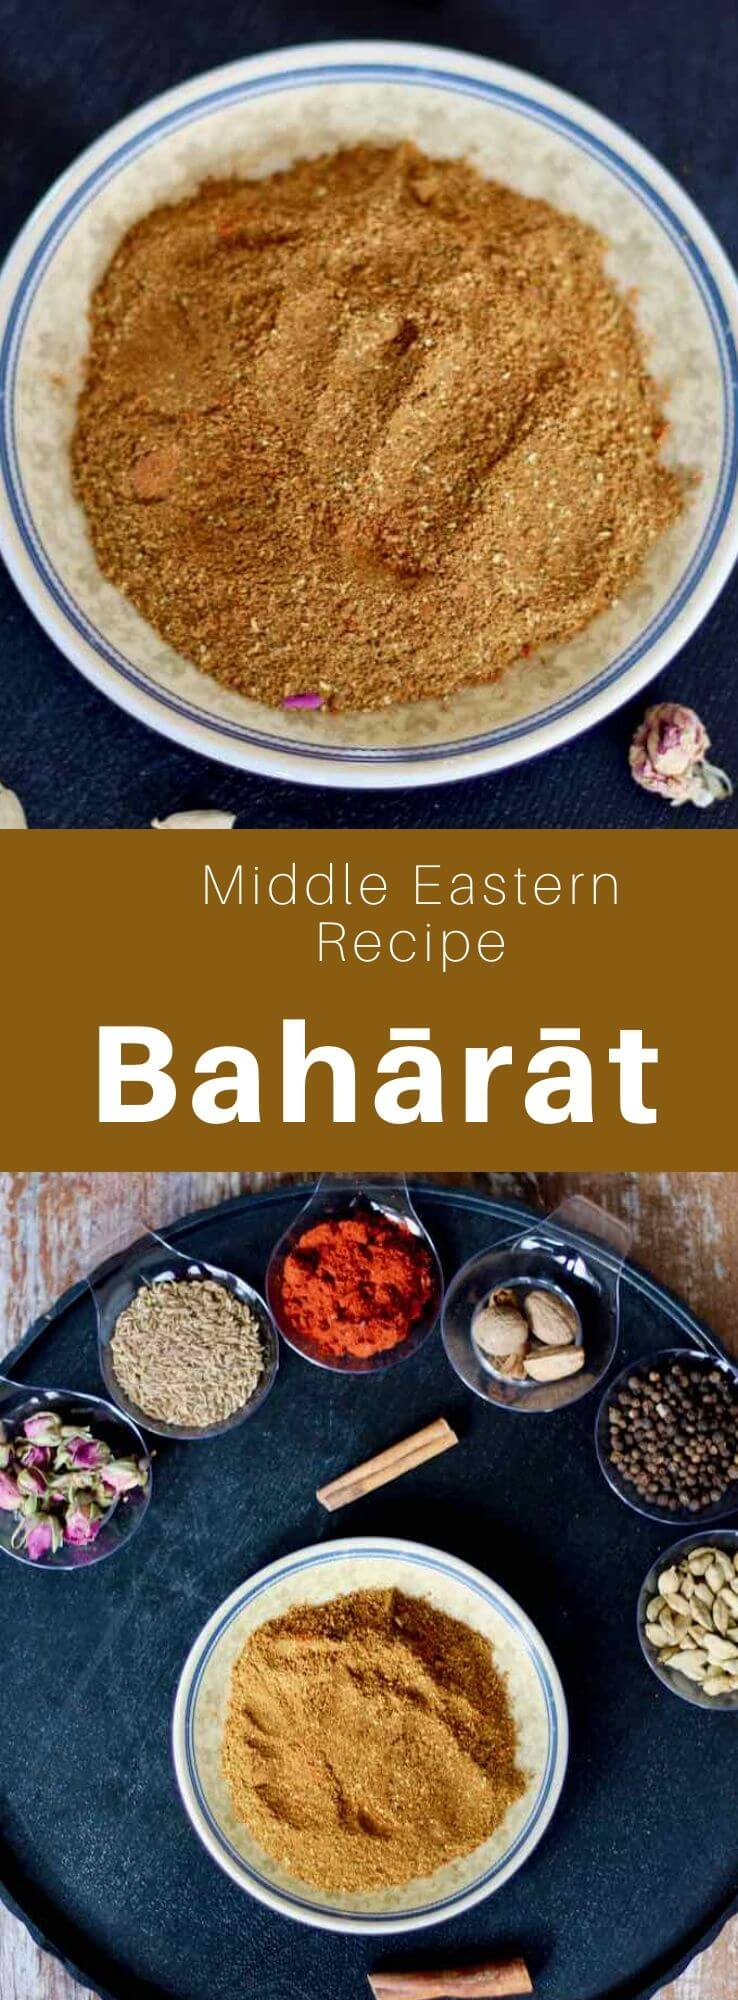 Bahārāt is a mixture of spices made with pepper, cumin, coriander, cloves, cinnamon, saffron, cardamom, paprika, nutmeg and black lime.